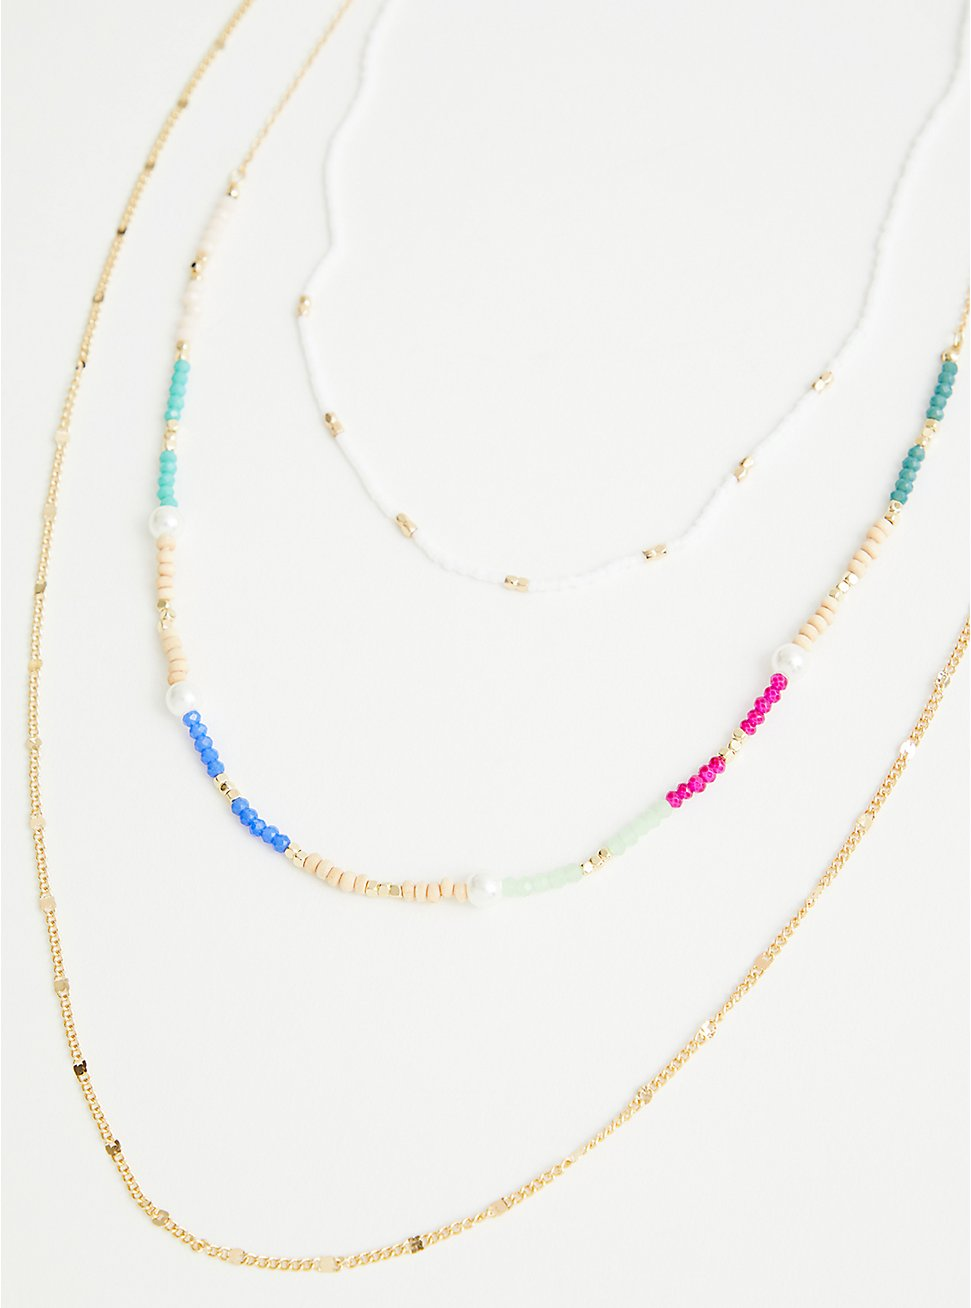 Color Block Beaded Layered Necklace - Gold Tone, , hi-res